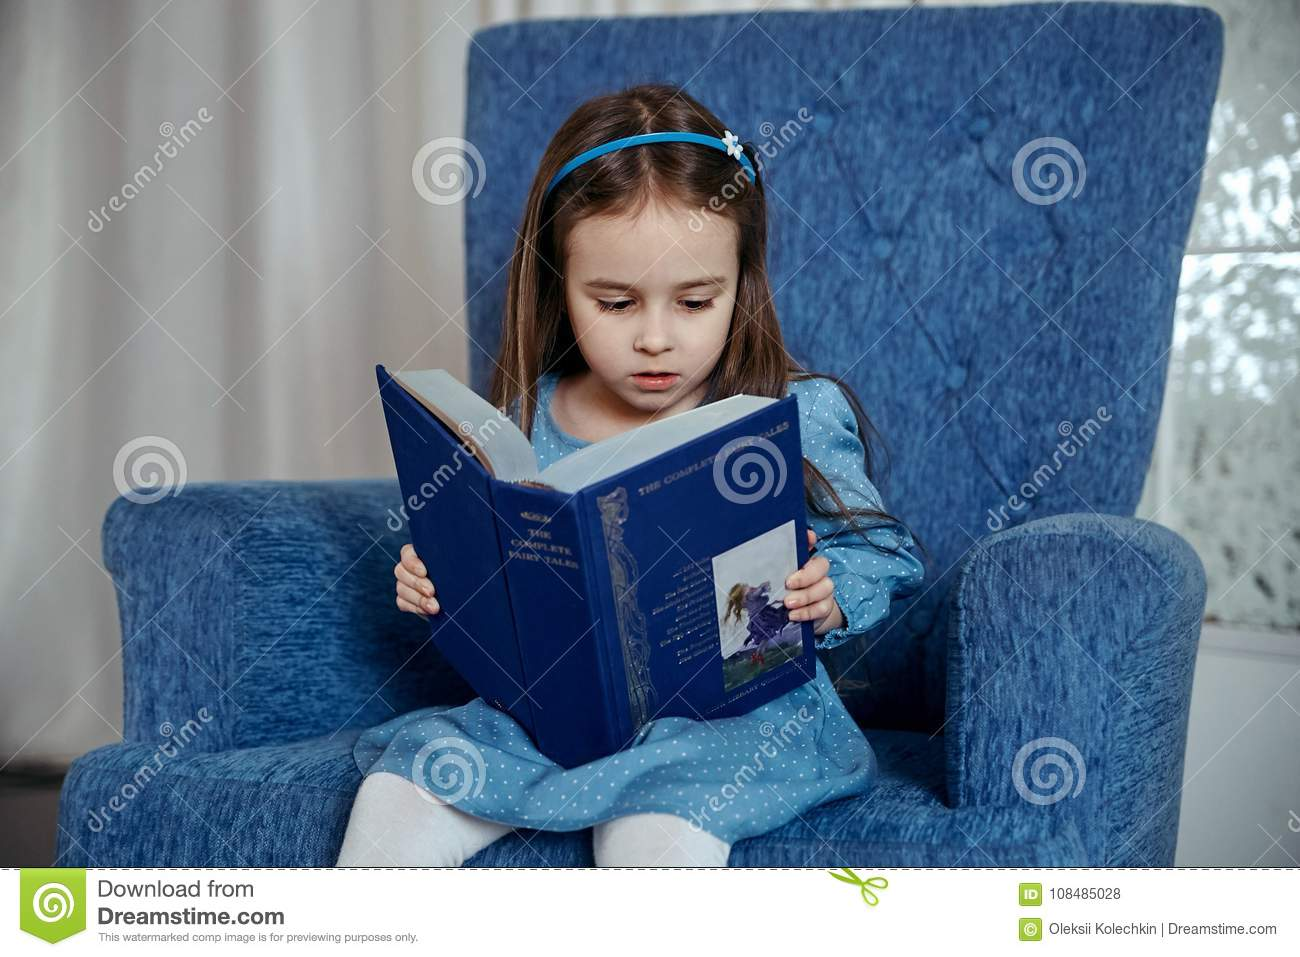 little girl in a blue dress is sitting in a blue armchair and is